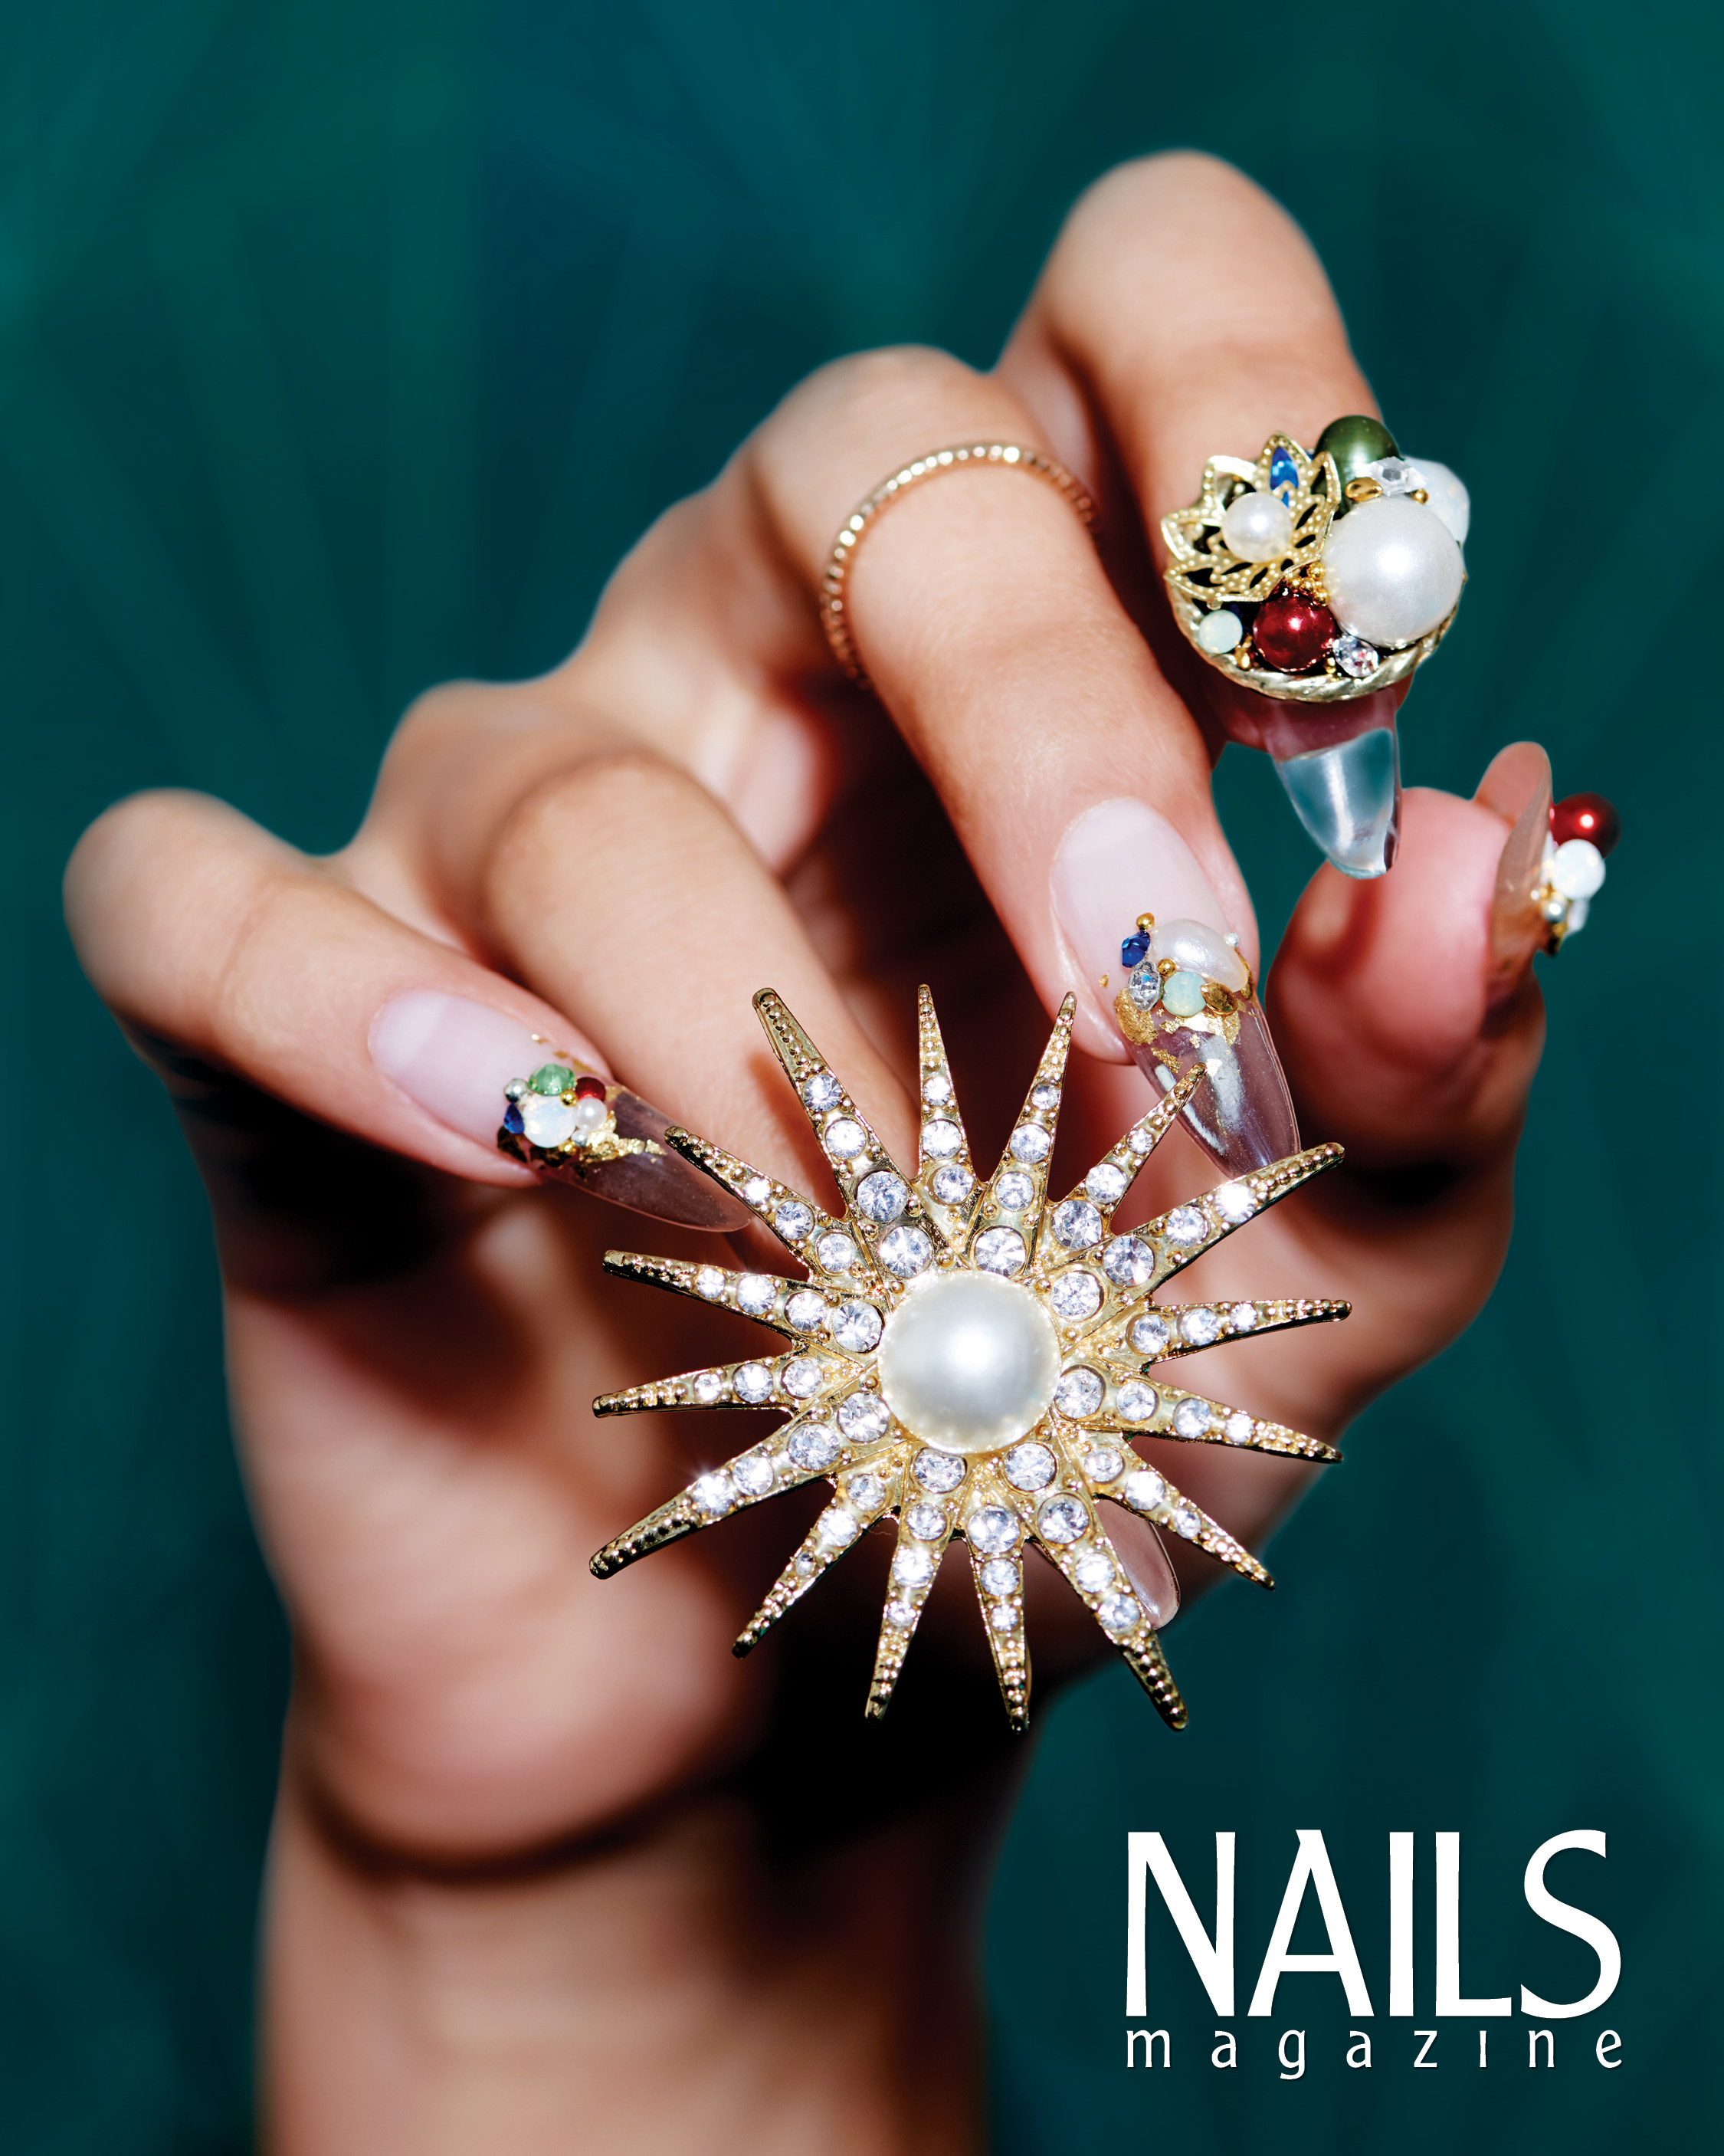 Behind the Scenes: Customizable Clear Nails